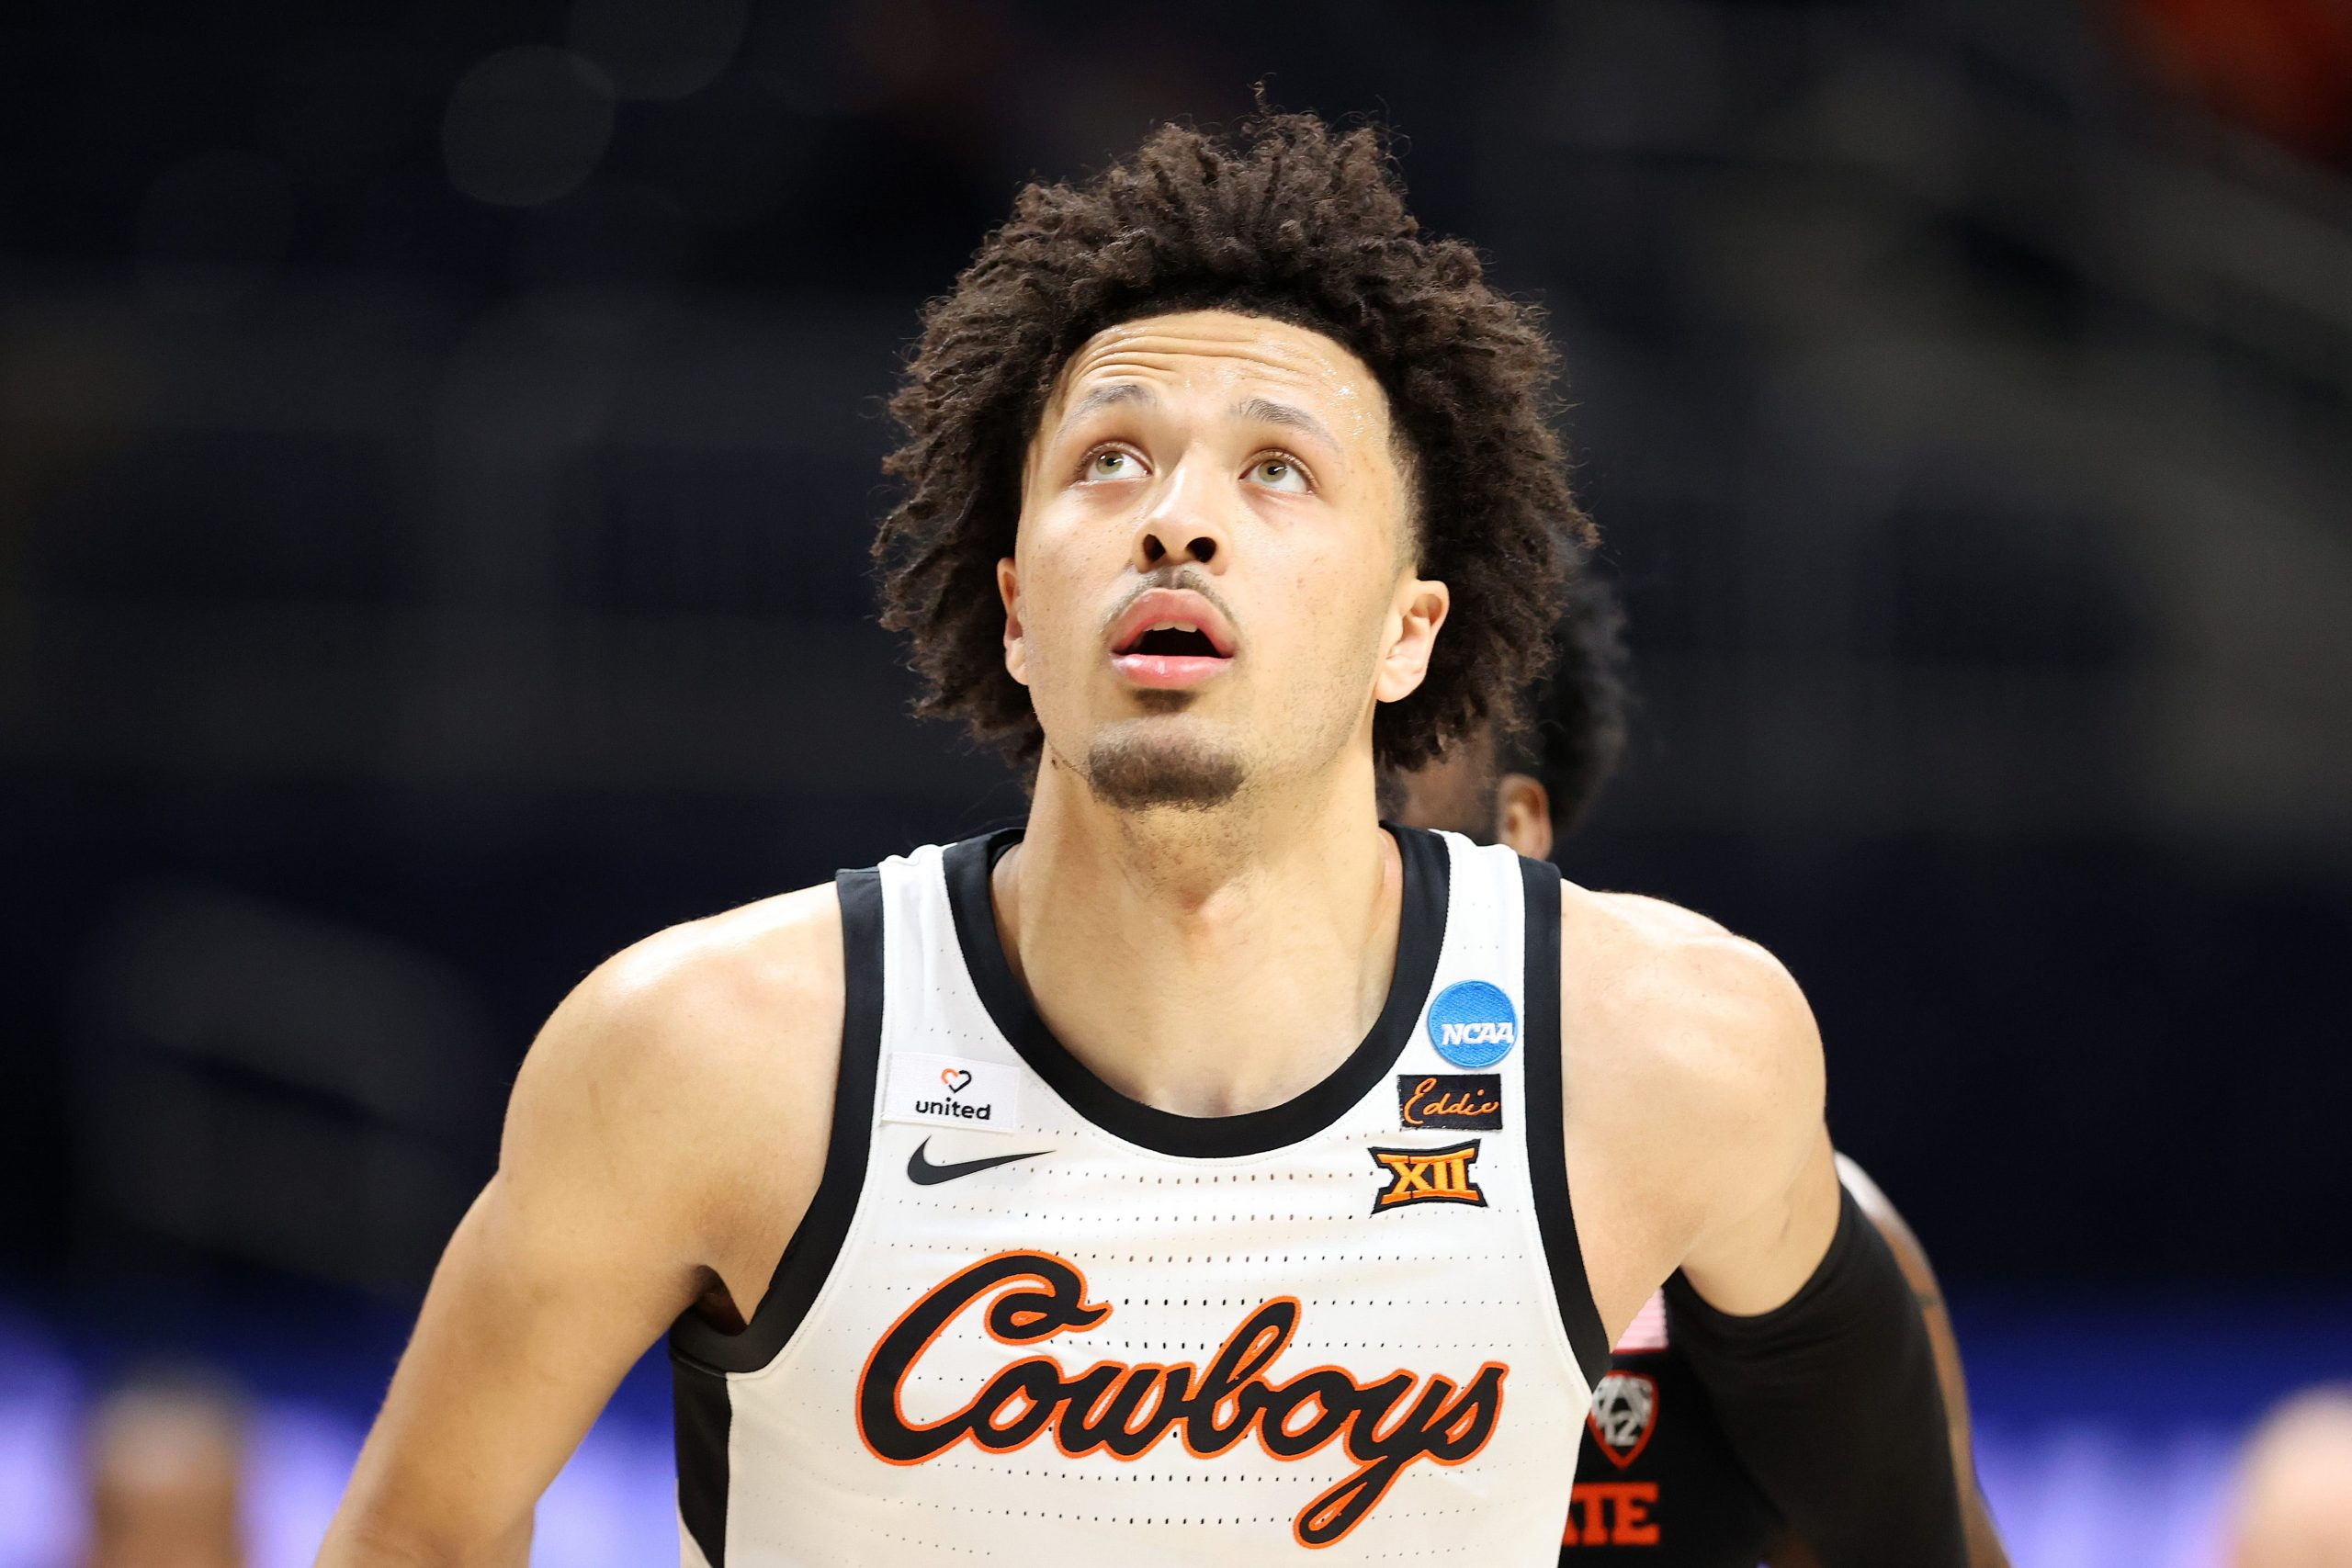 2021 NBA Draft: Time, how to watch/live stream, top picks, first round order